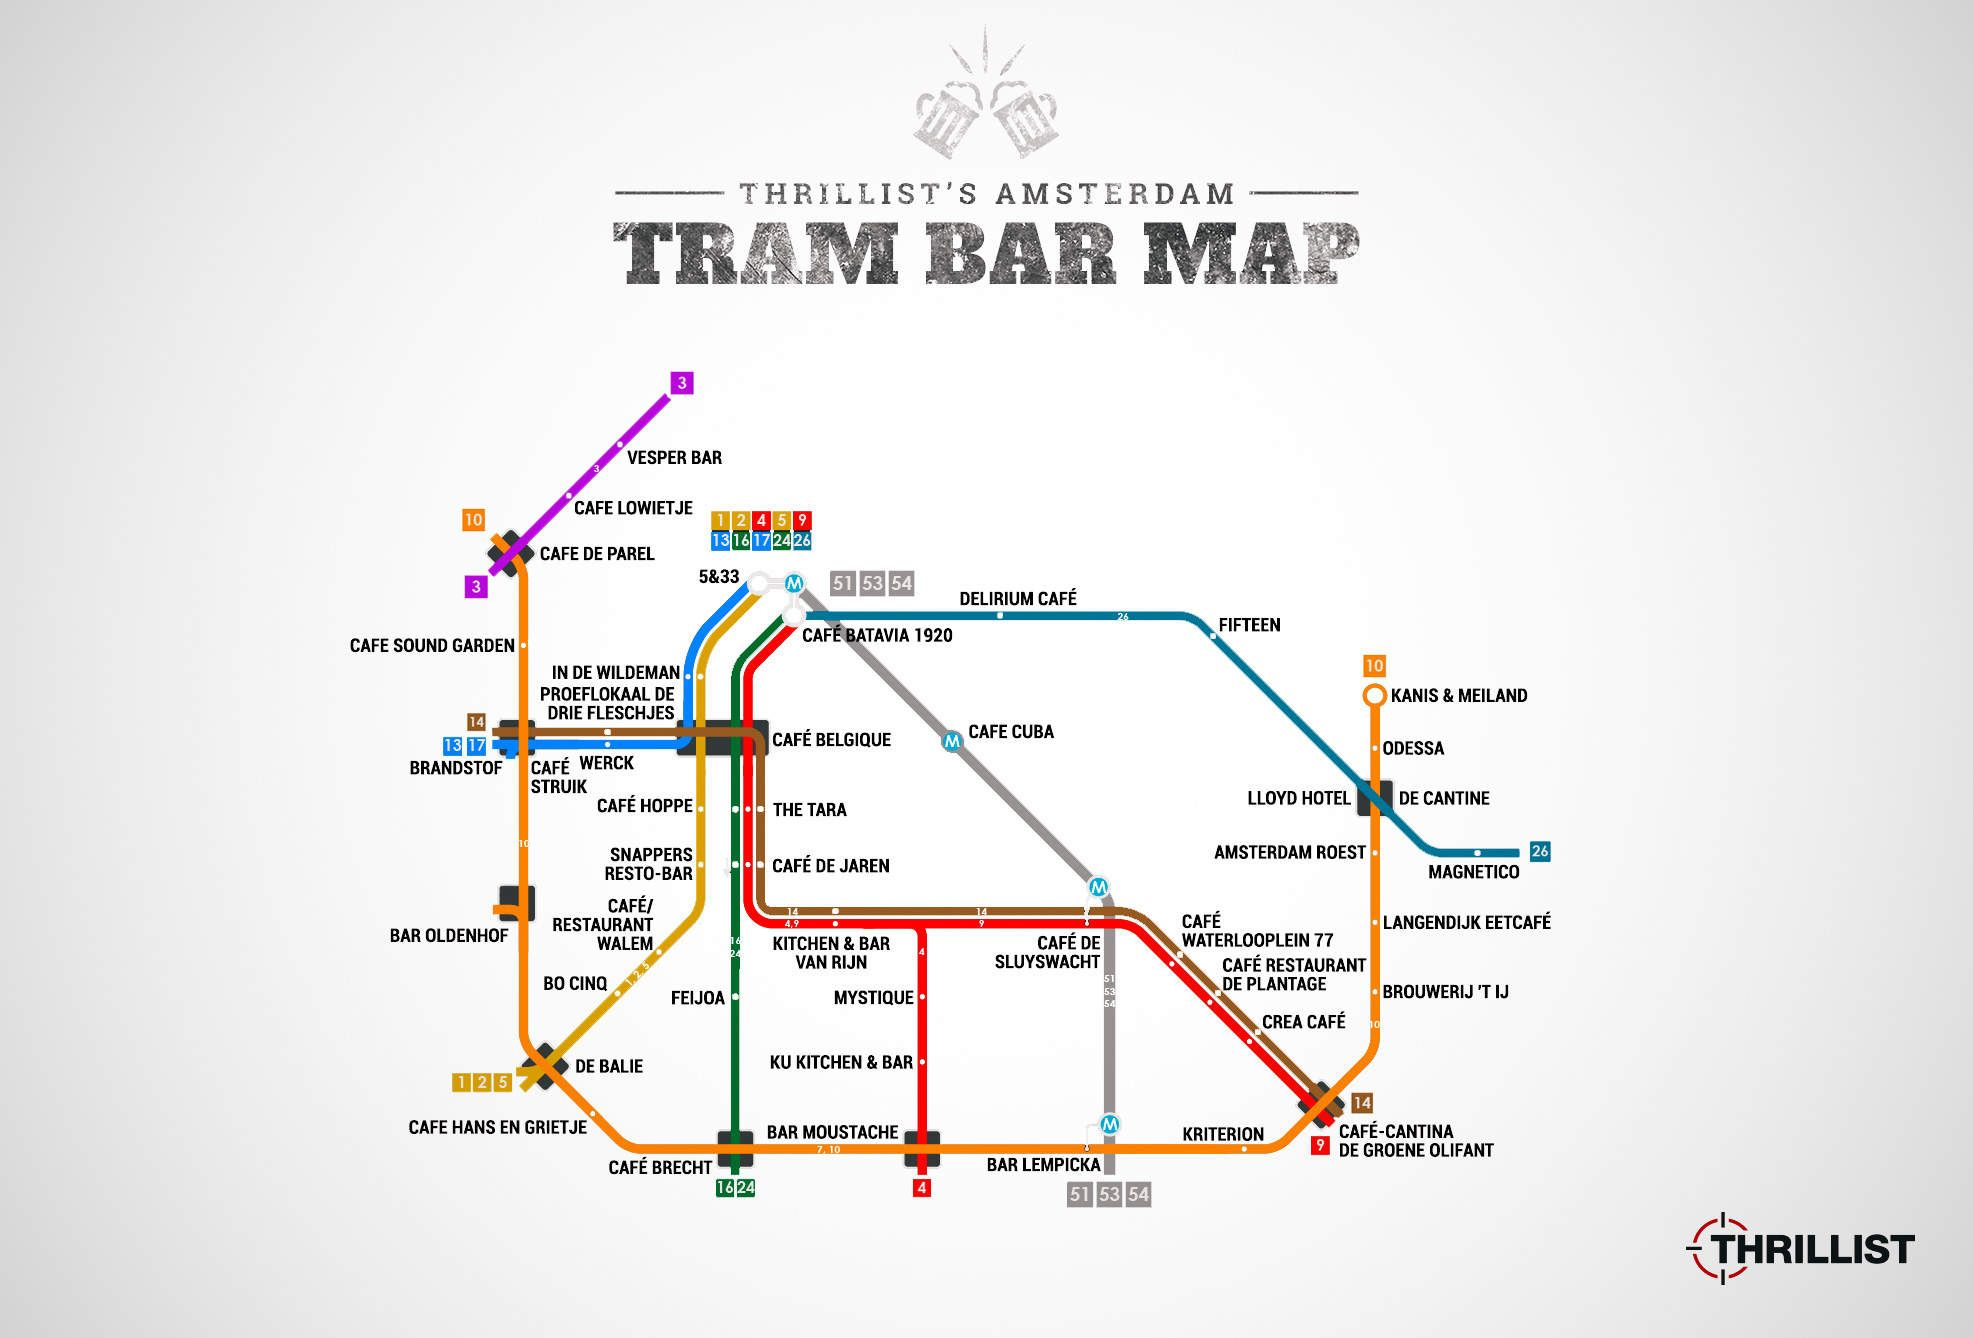 incase of rain ;) Amsterdam's First Official Tram Bar Map